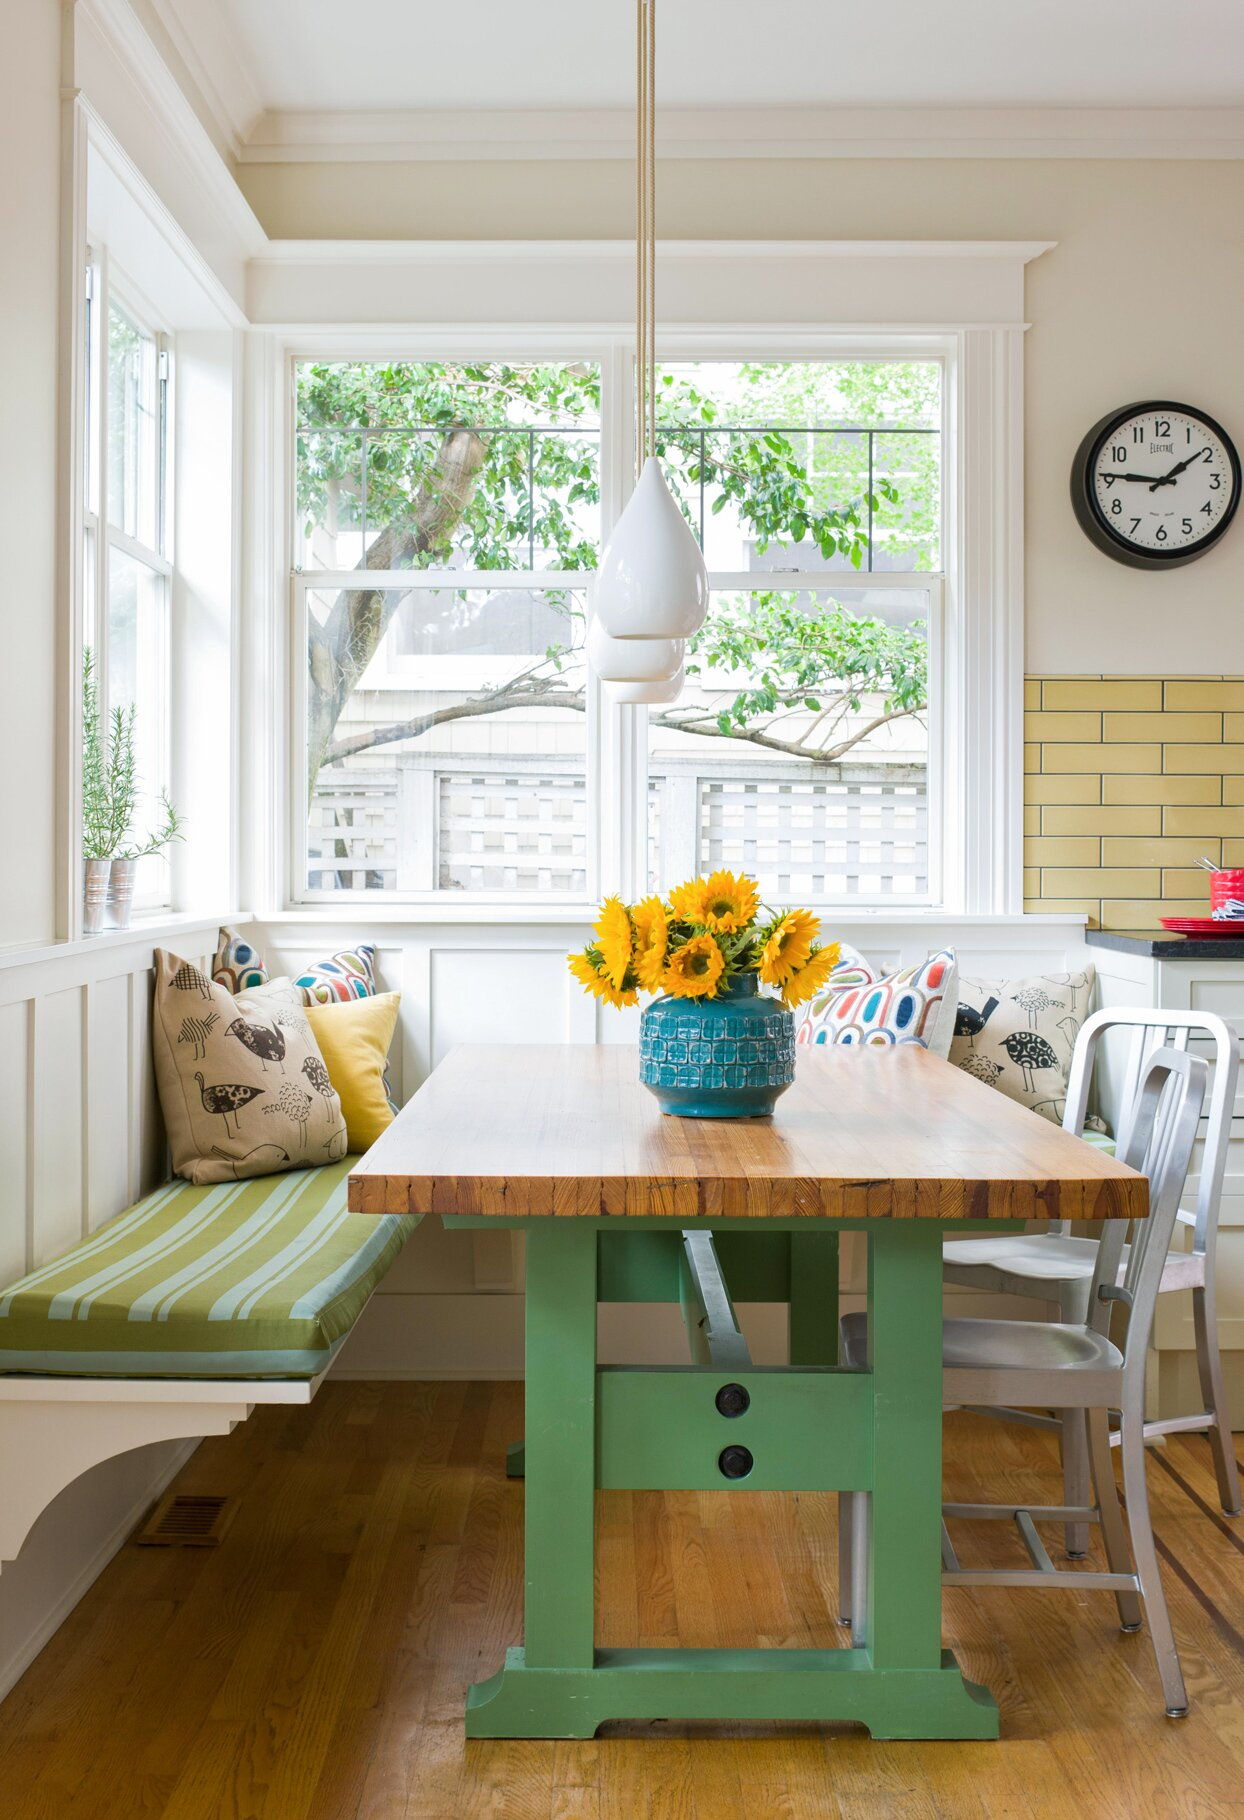 kitchen breakfast nook green table and bench yellow flowers in teal vase